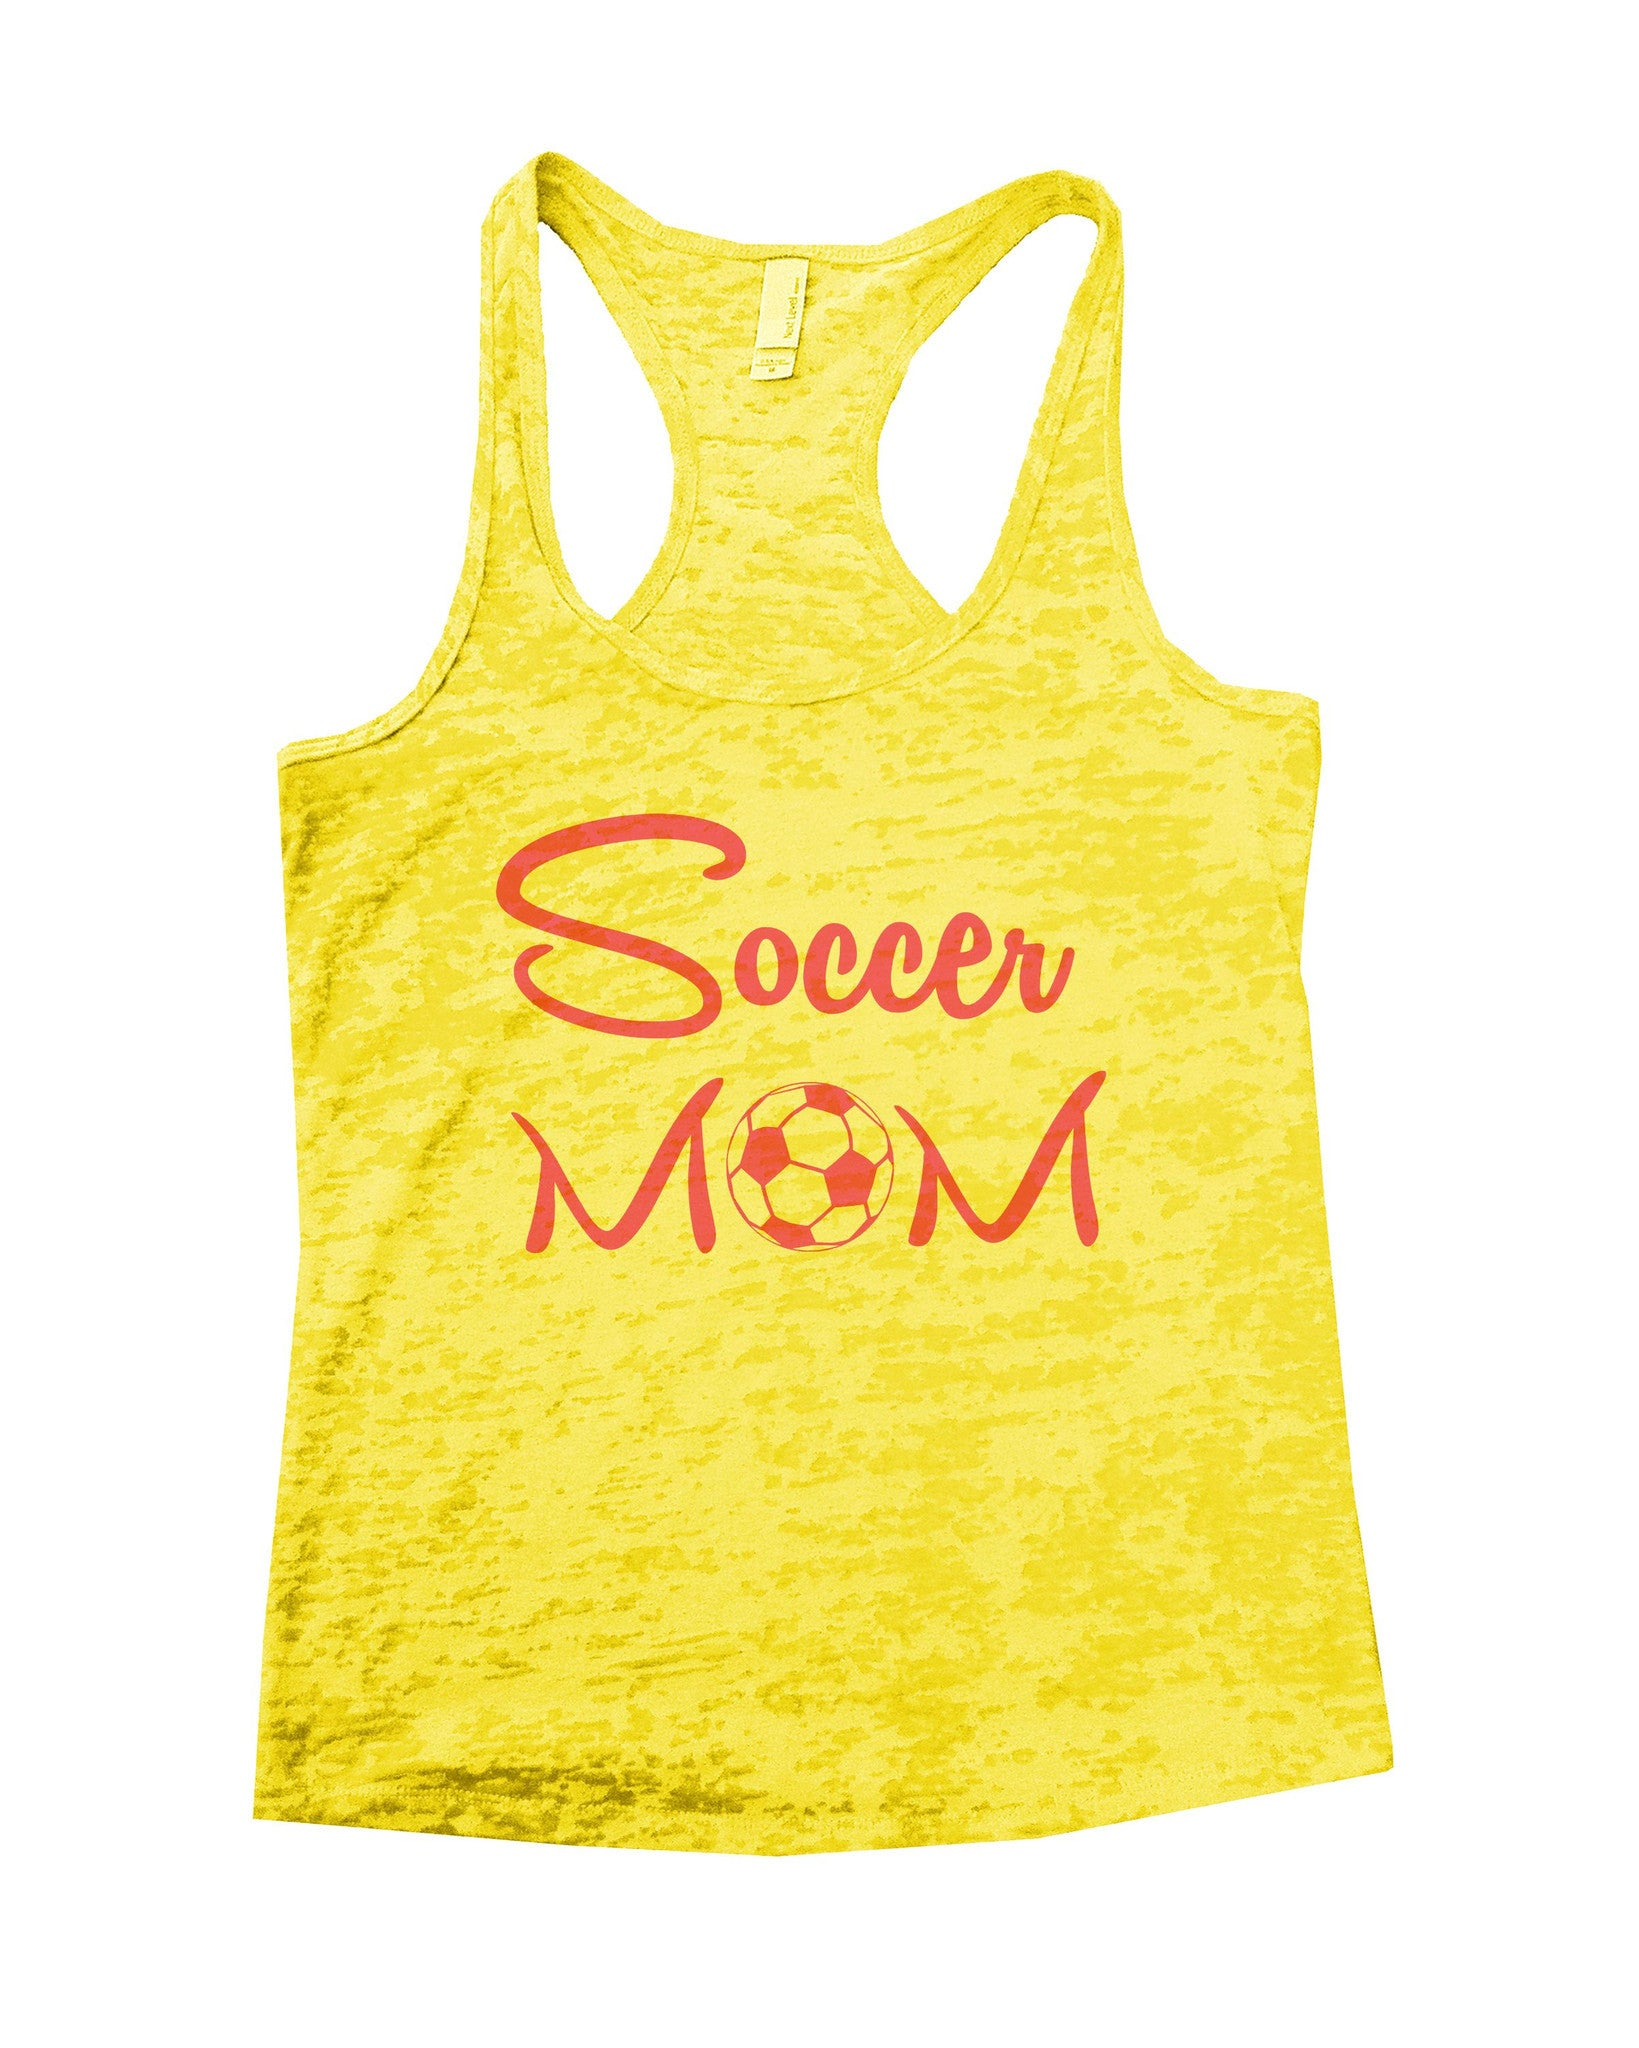 Soccer Mom Burnout Tank Top By BurnoutTankTops.com - 658 - Funny Shirts Tank Tops Burnouts and Triblends  - 7